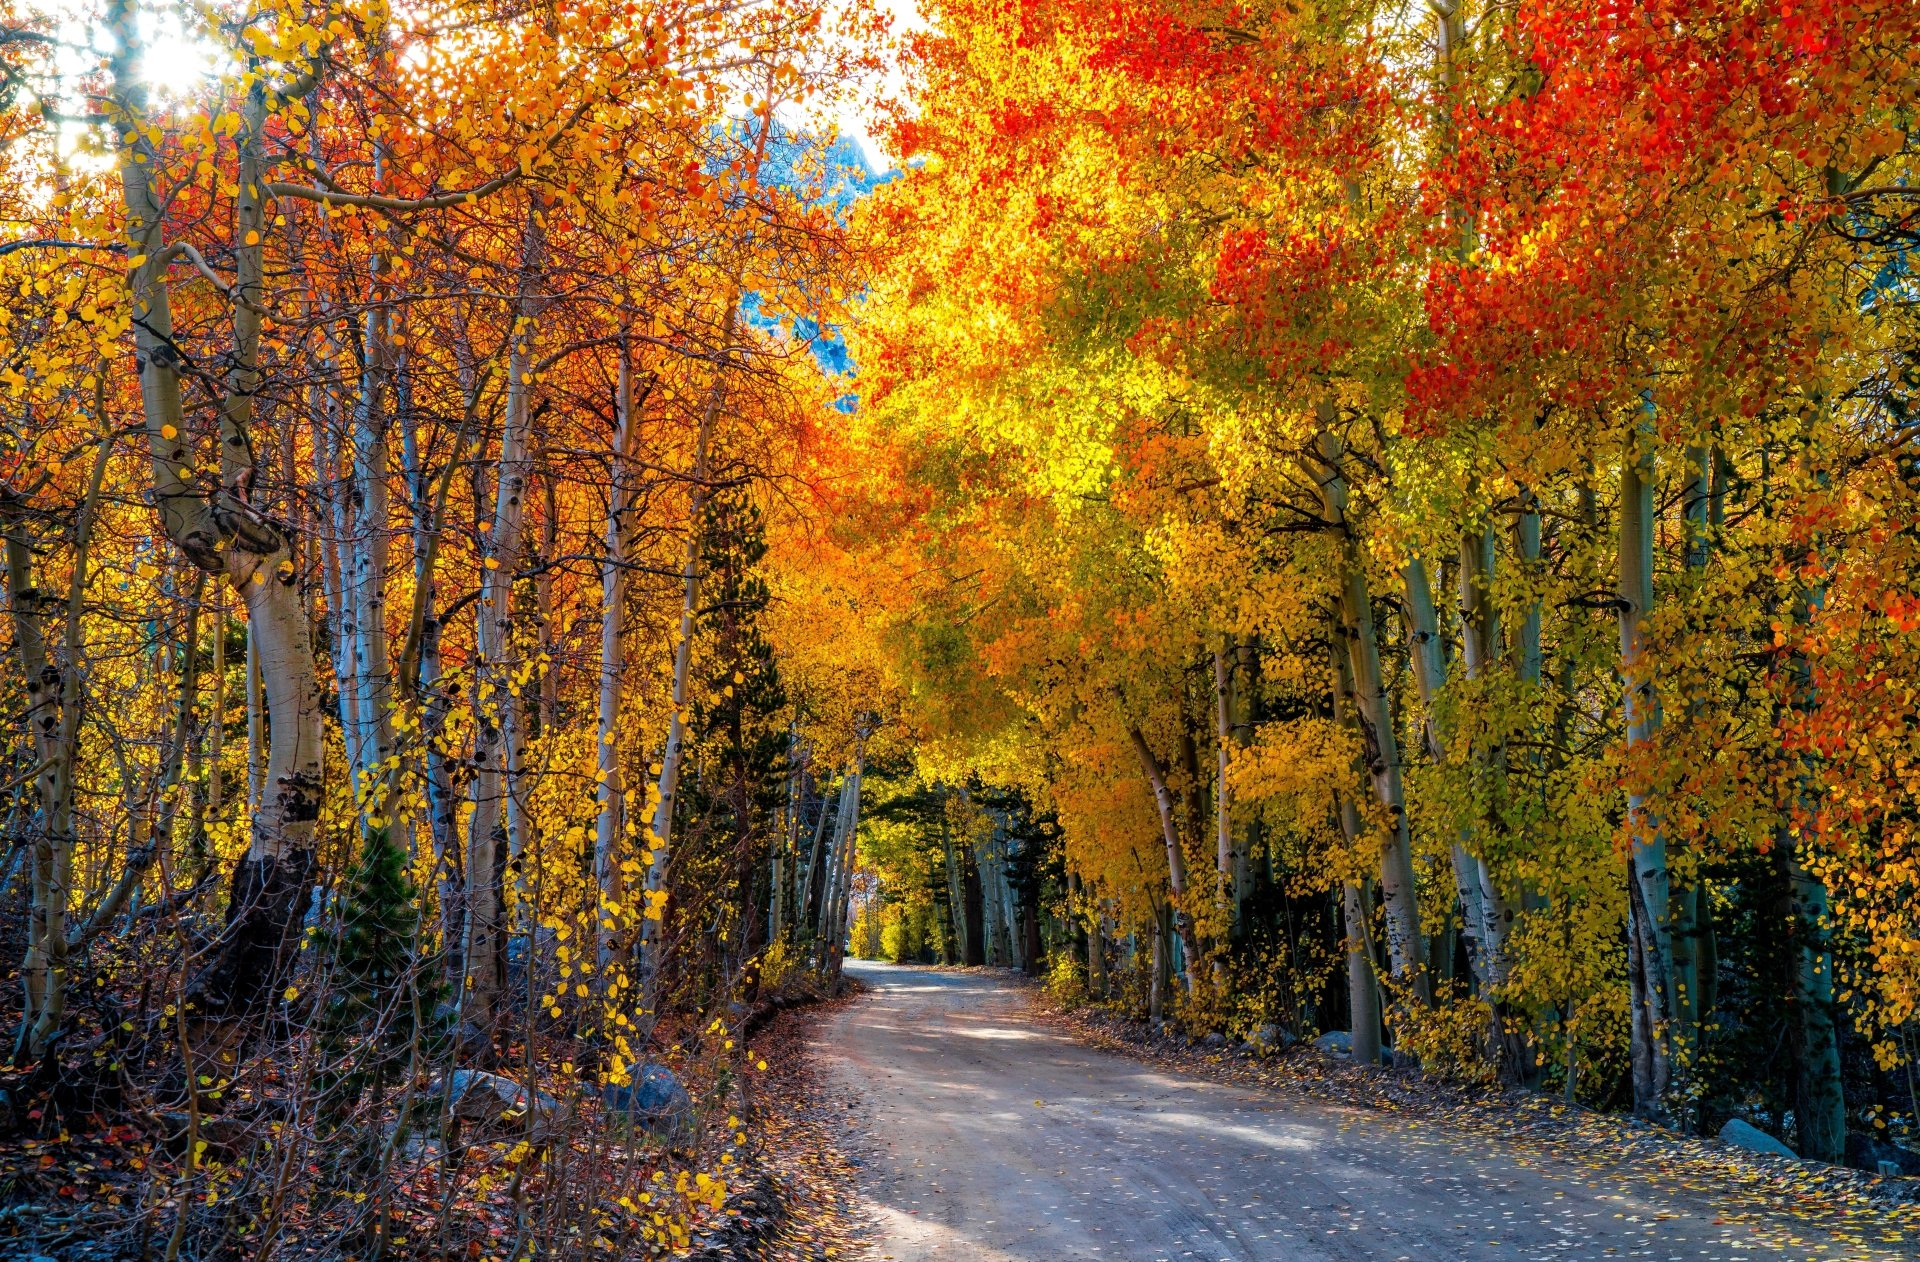 Falling Leaves Wallpaper For Iphone Autumn Road 8k Ultra Hd Wallpaper Background Image